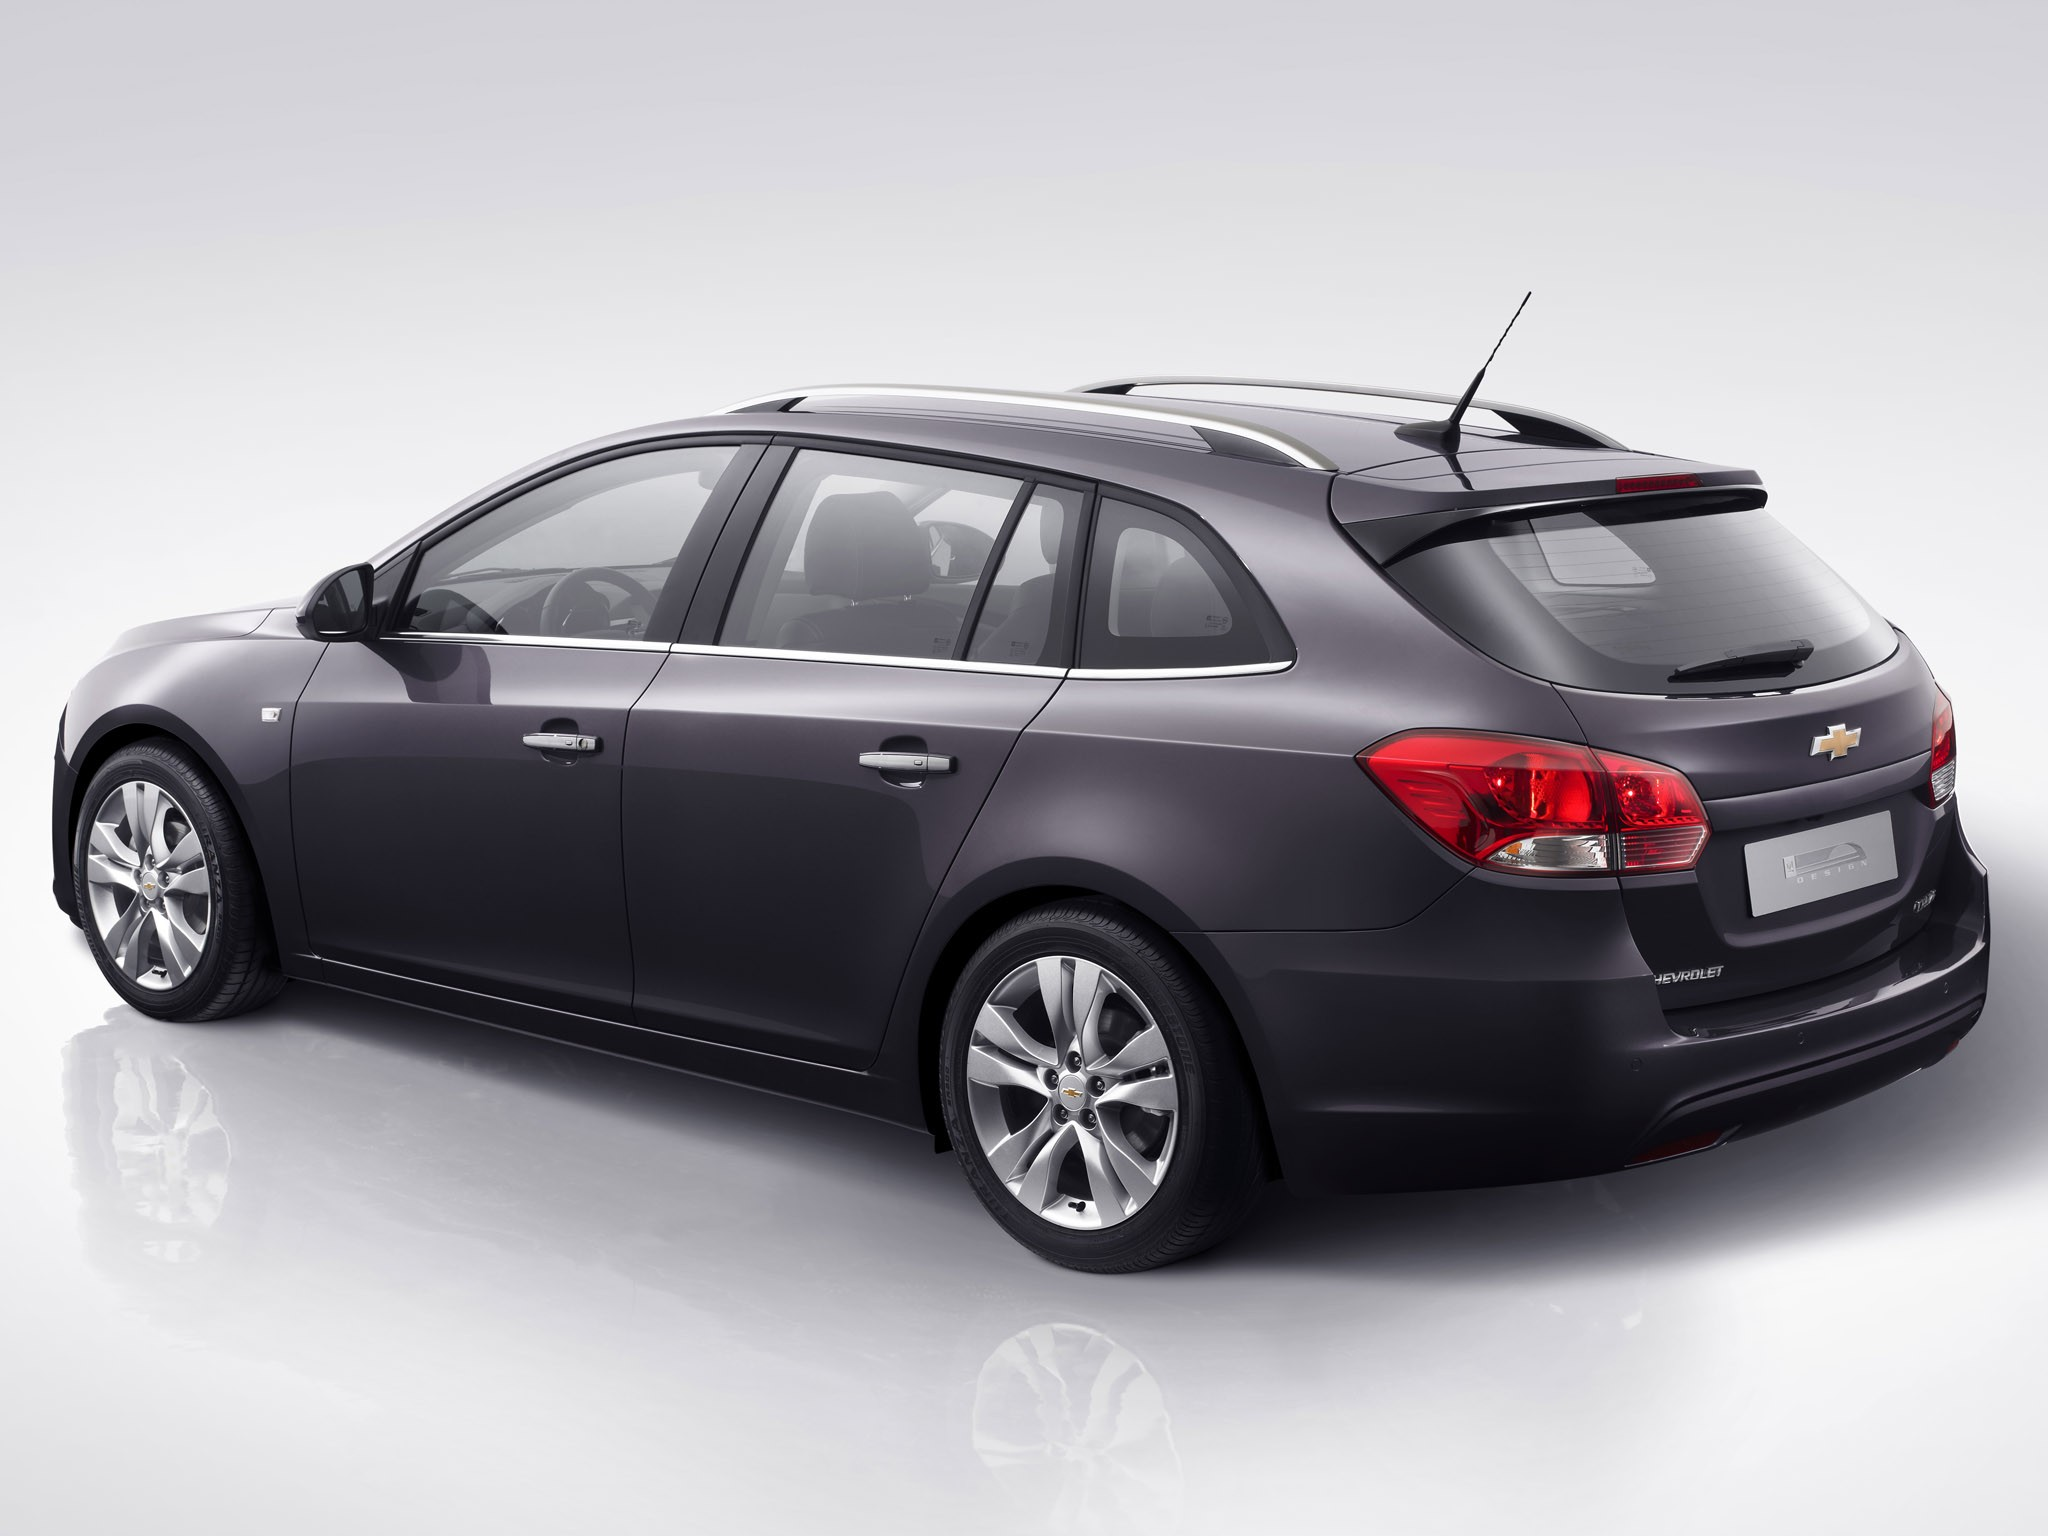 2012 Chevrolet Cruze Station Wagon